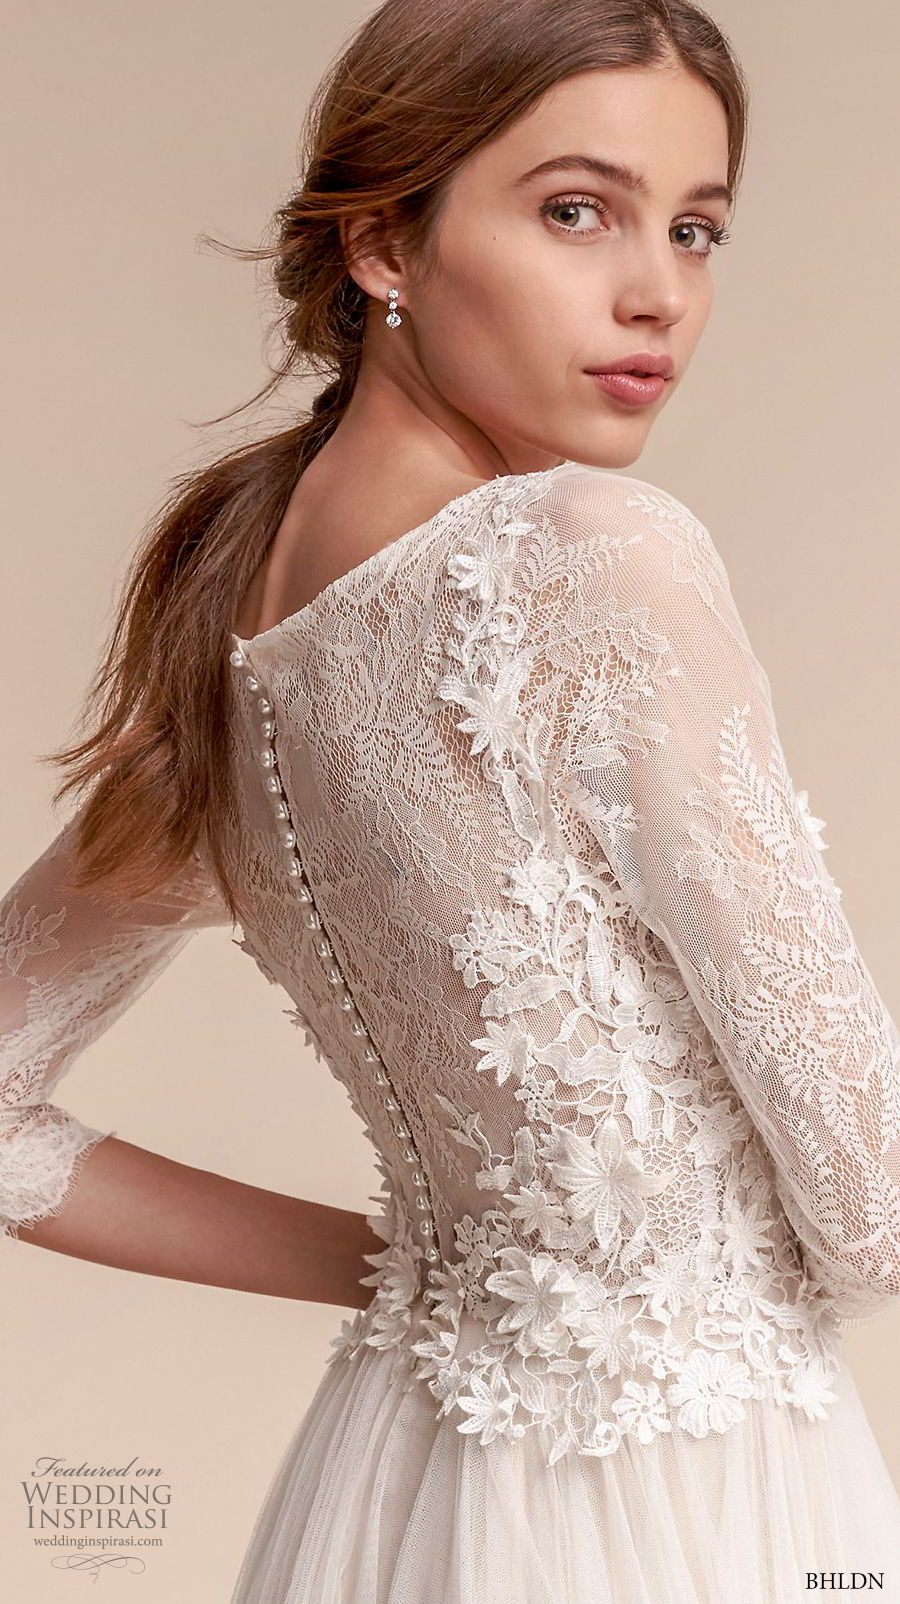 bhldn fall 2017  americana bridal three quarter sleeves bateau neck heavily embellished bodice tulle skirt romantic soft a  lne wedding dress covered lace back sweep train (amelia) zbv